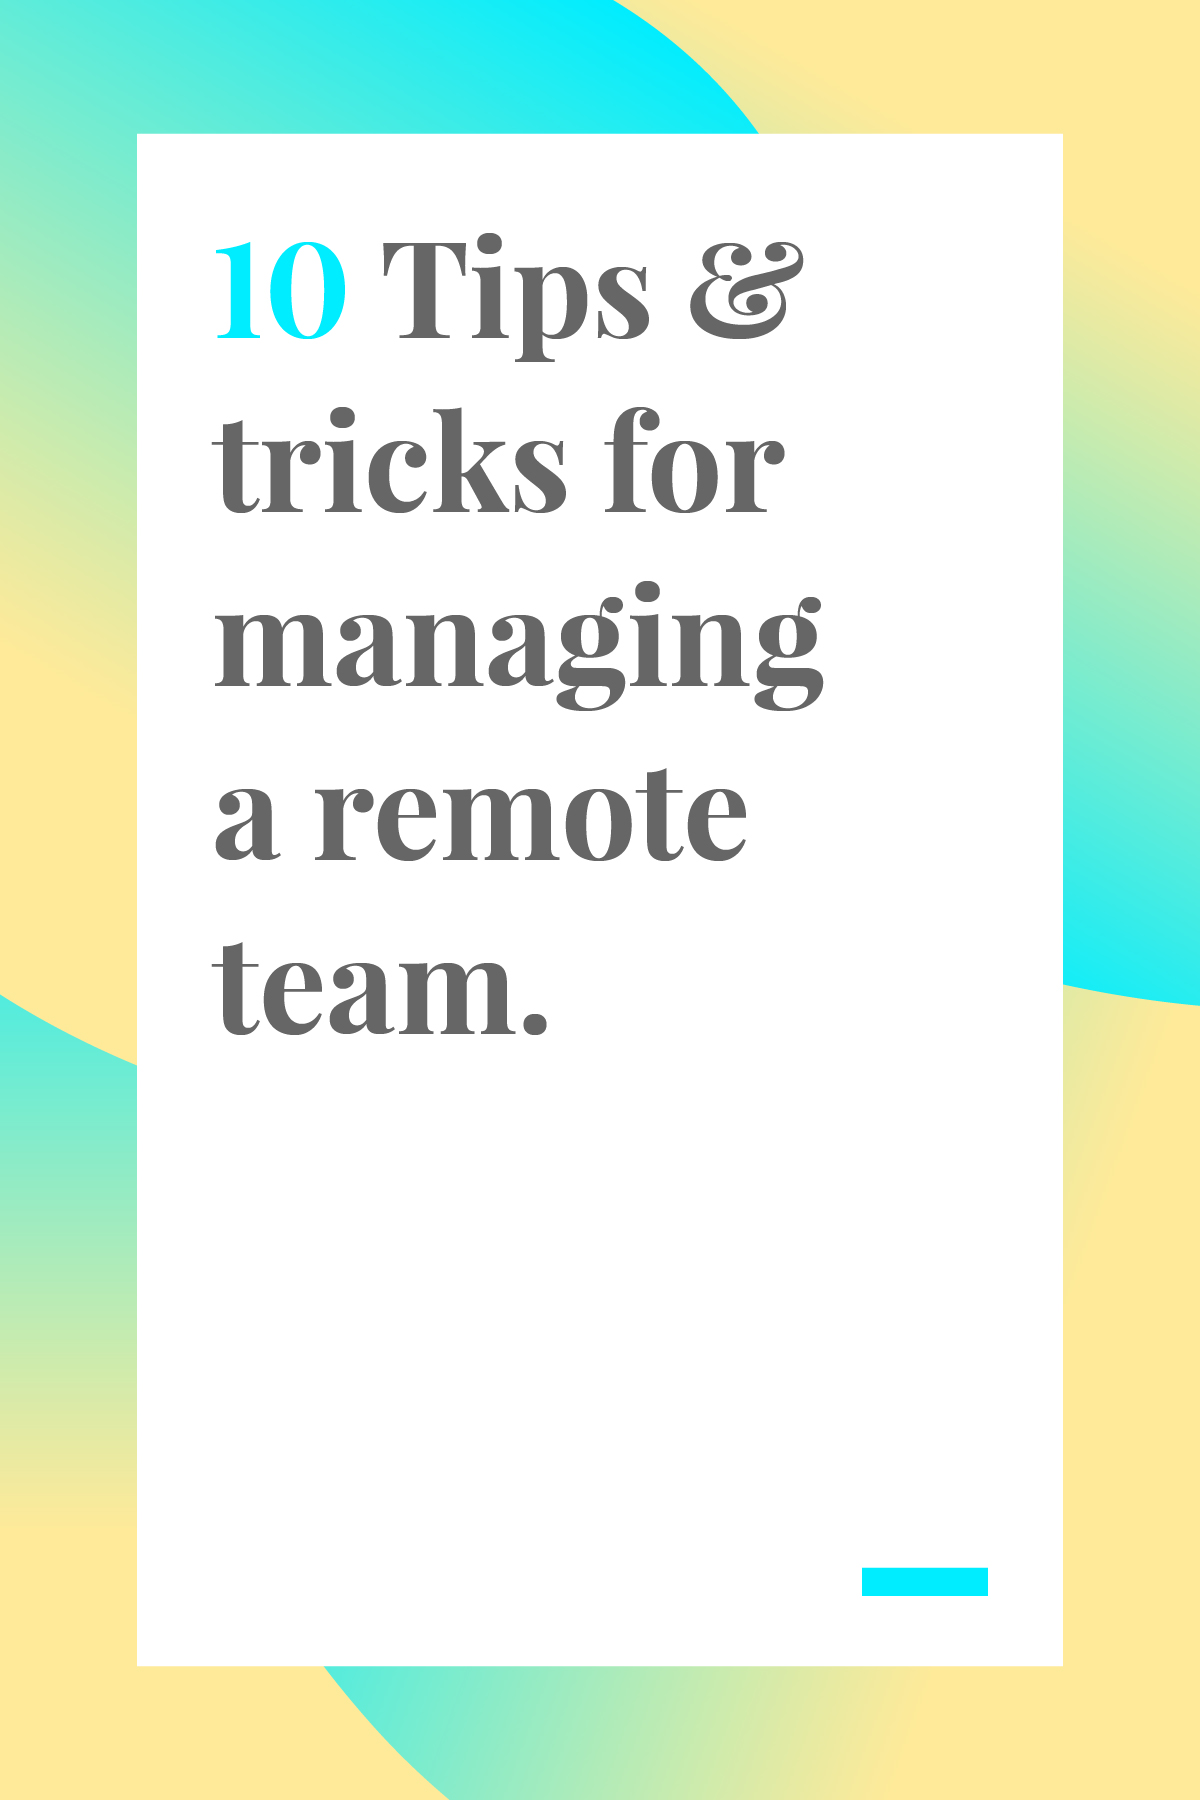 Managing any kind of team can certainly have its challenges. But, when working in a remote team, sometimes those challenges seem to be amplified. These 10 tips will help you keep your team organized and focused.